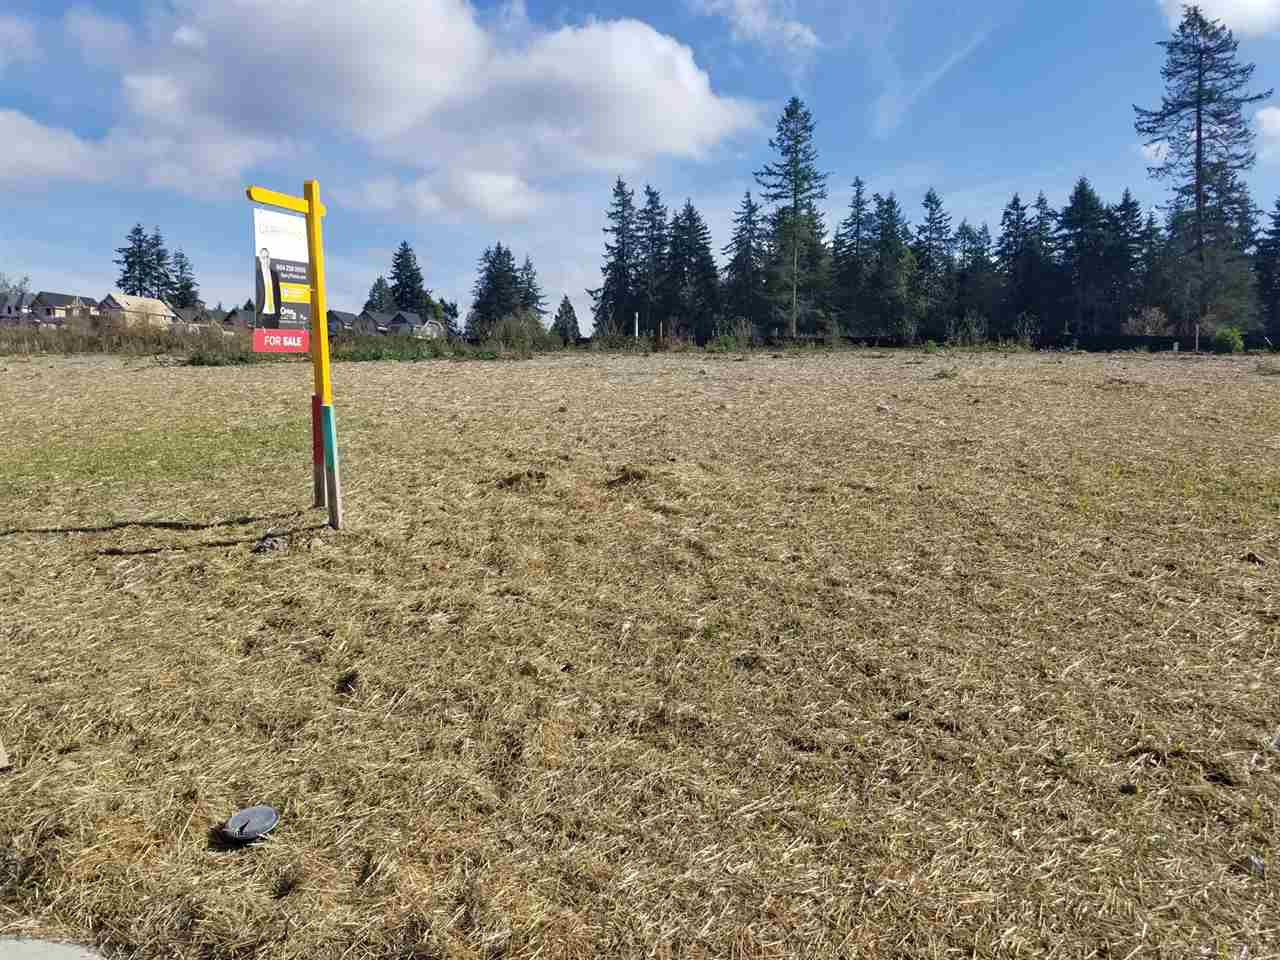 3610 Sqft Lot in the new subdivision, Ready to build. The plans submitted at city hall and can be passed on to the buyers upon request. Adjacent lot 2052 165 ST MLS# R2212478  also available for sale. Hurry before it's gone!!!